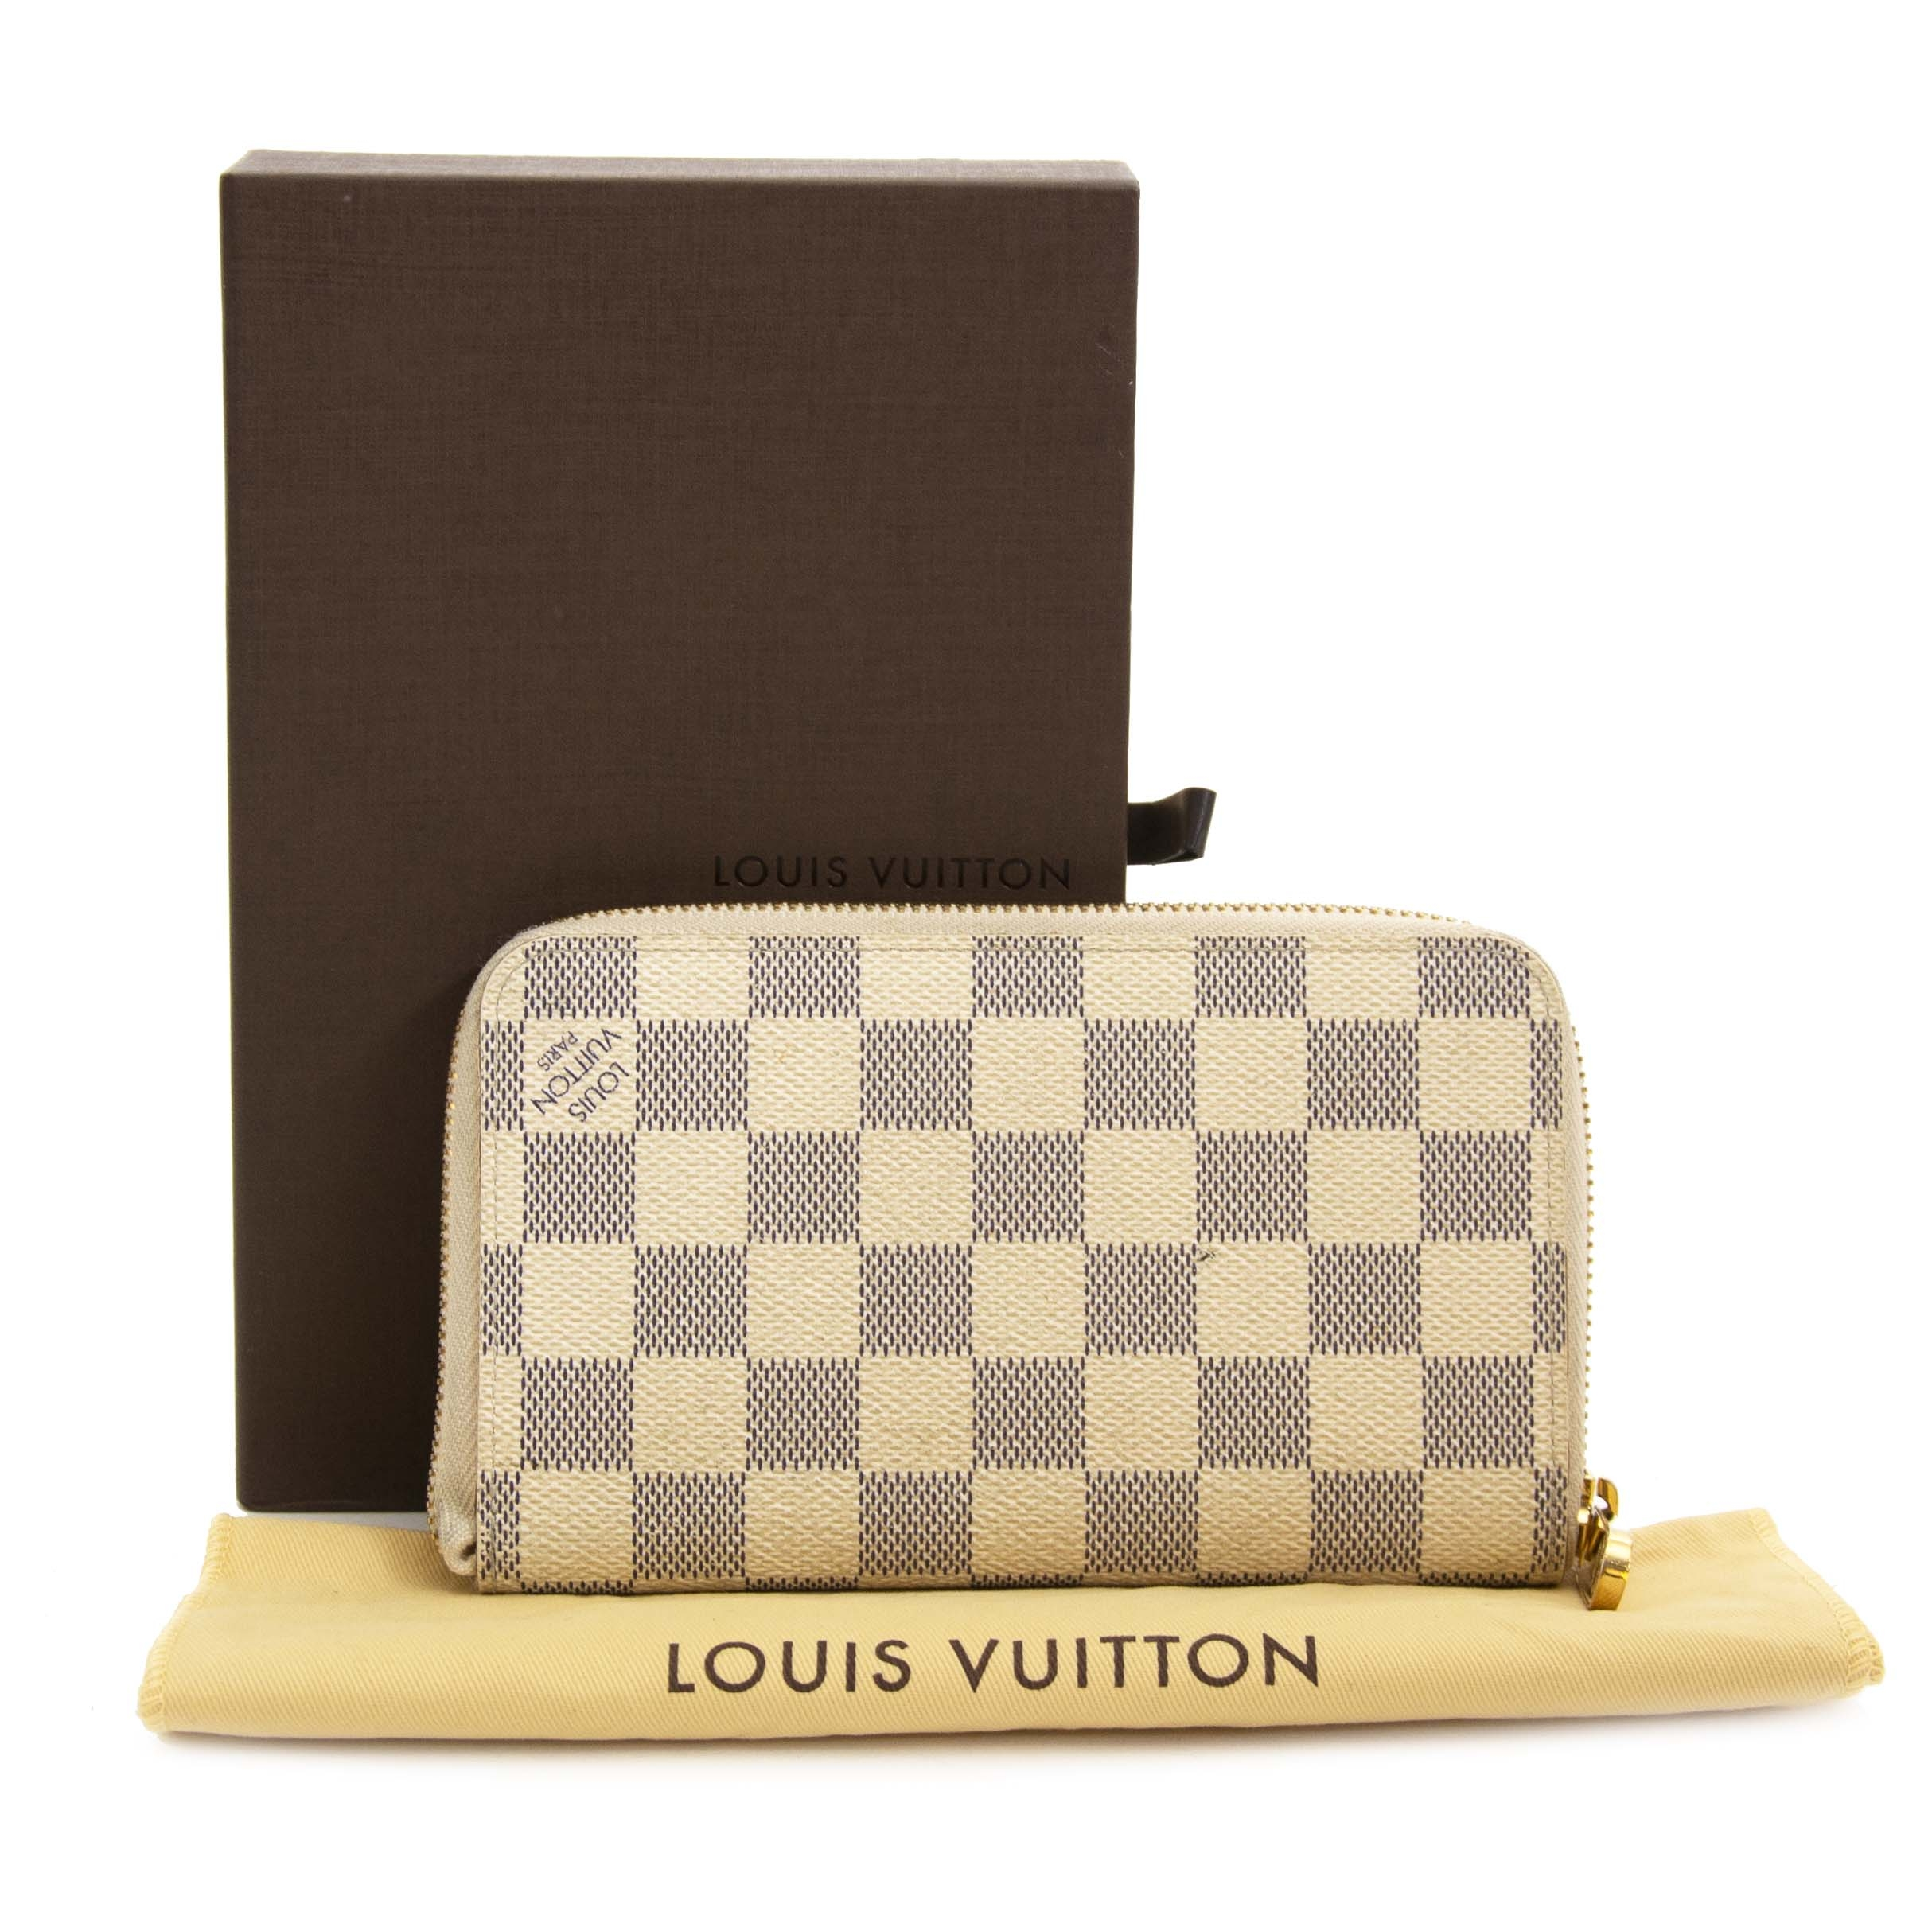 4de67162ab ... Wallet for sale at Labellov secondhand luxury in Antwerp Louis Vuitton  Damier Azur Zippy PTF portefeuille te koop bij Labellov